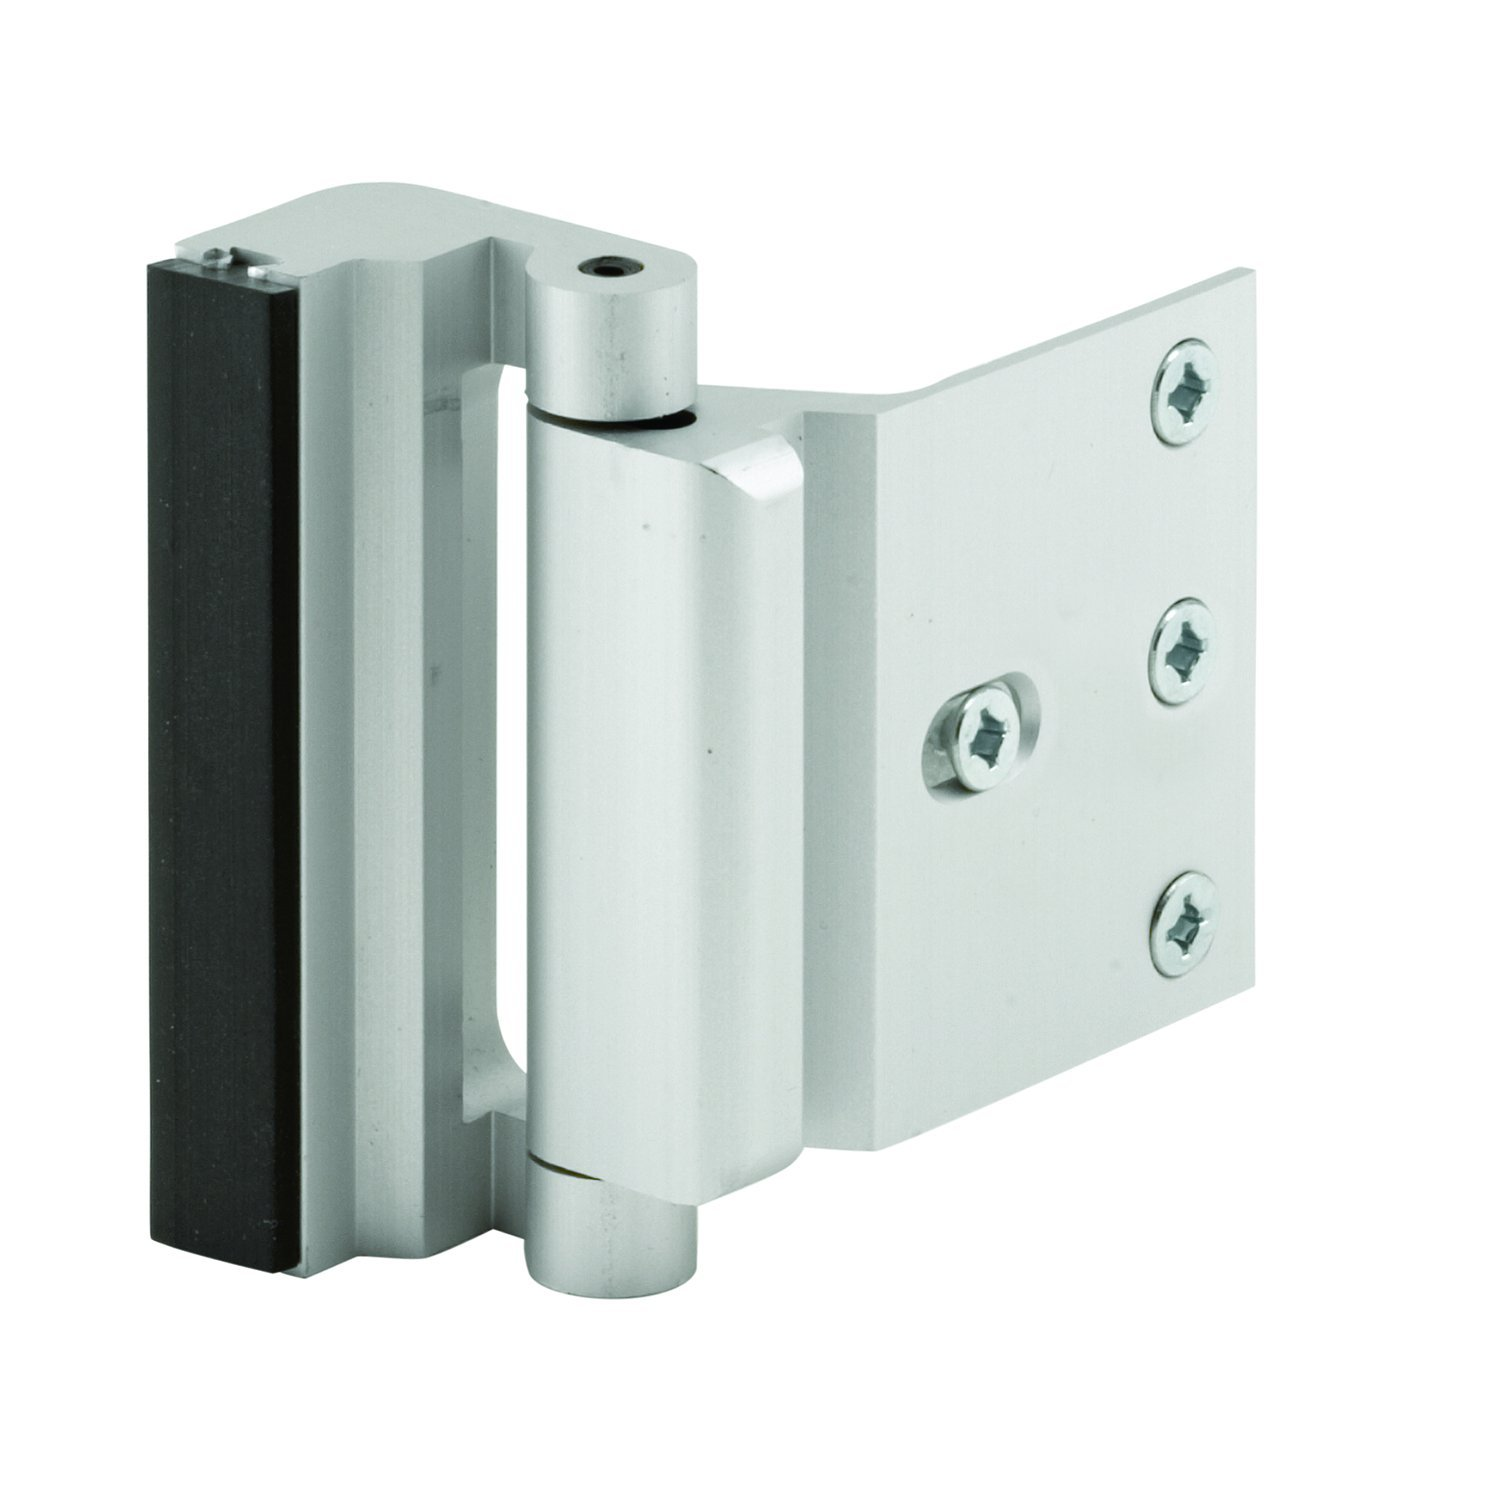 Defender Security U 10827 Door Reinforcement Lock - Add Extra High Security to your Home and Prevent Unauthorized Entry - 3\  Stop Aluminum Construction ...  sc 1 st  Amazon.com & Defender Security U 10827 Door Reinforcement Lock - Add Extra ...